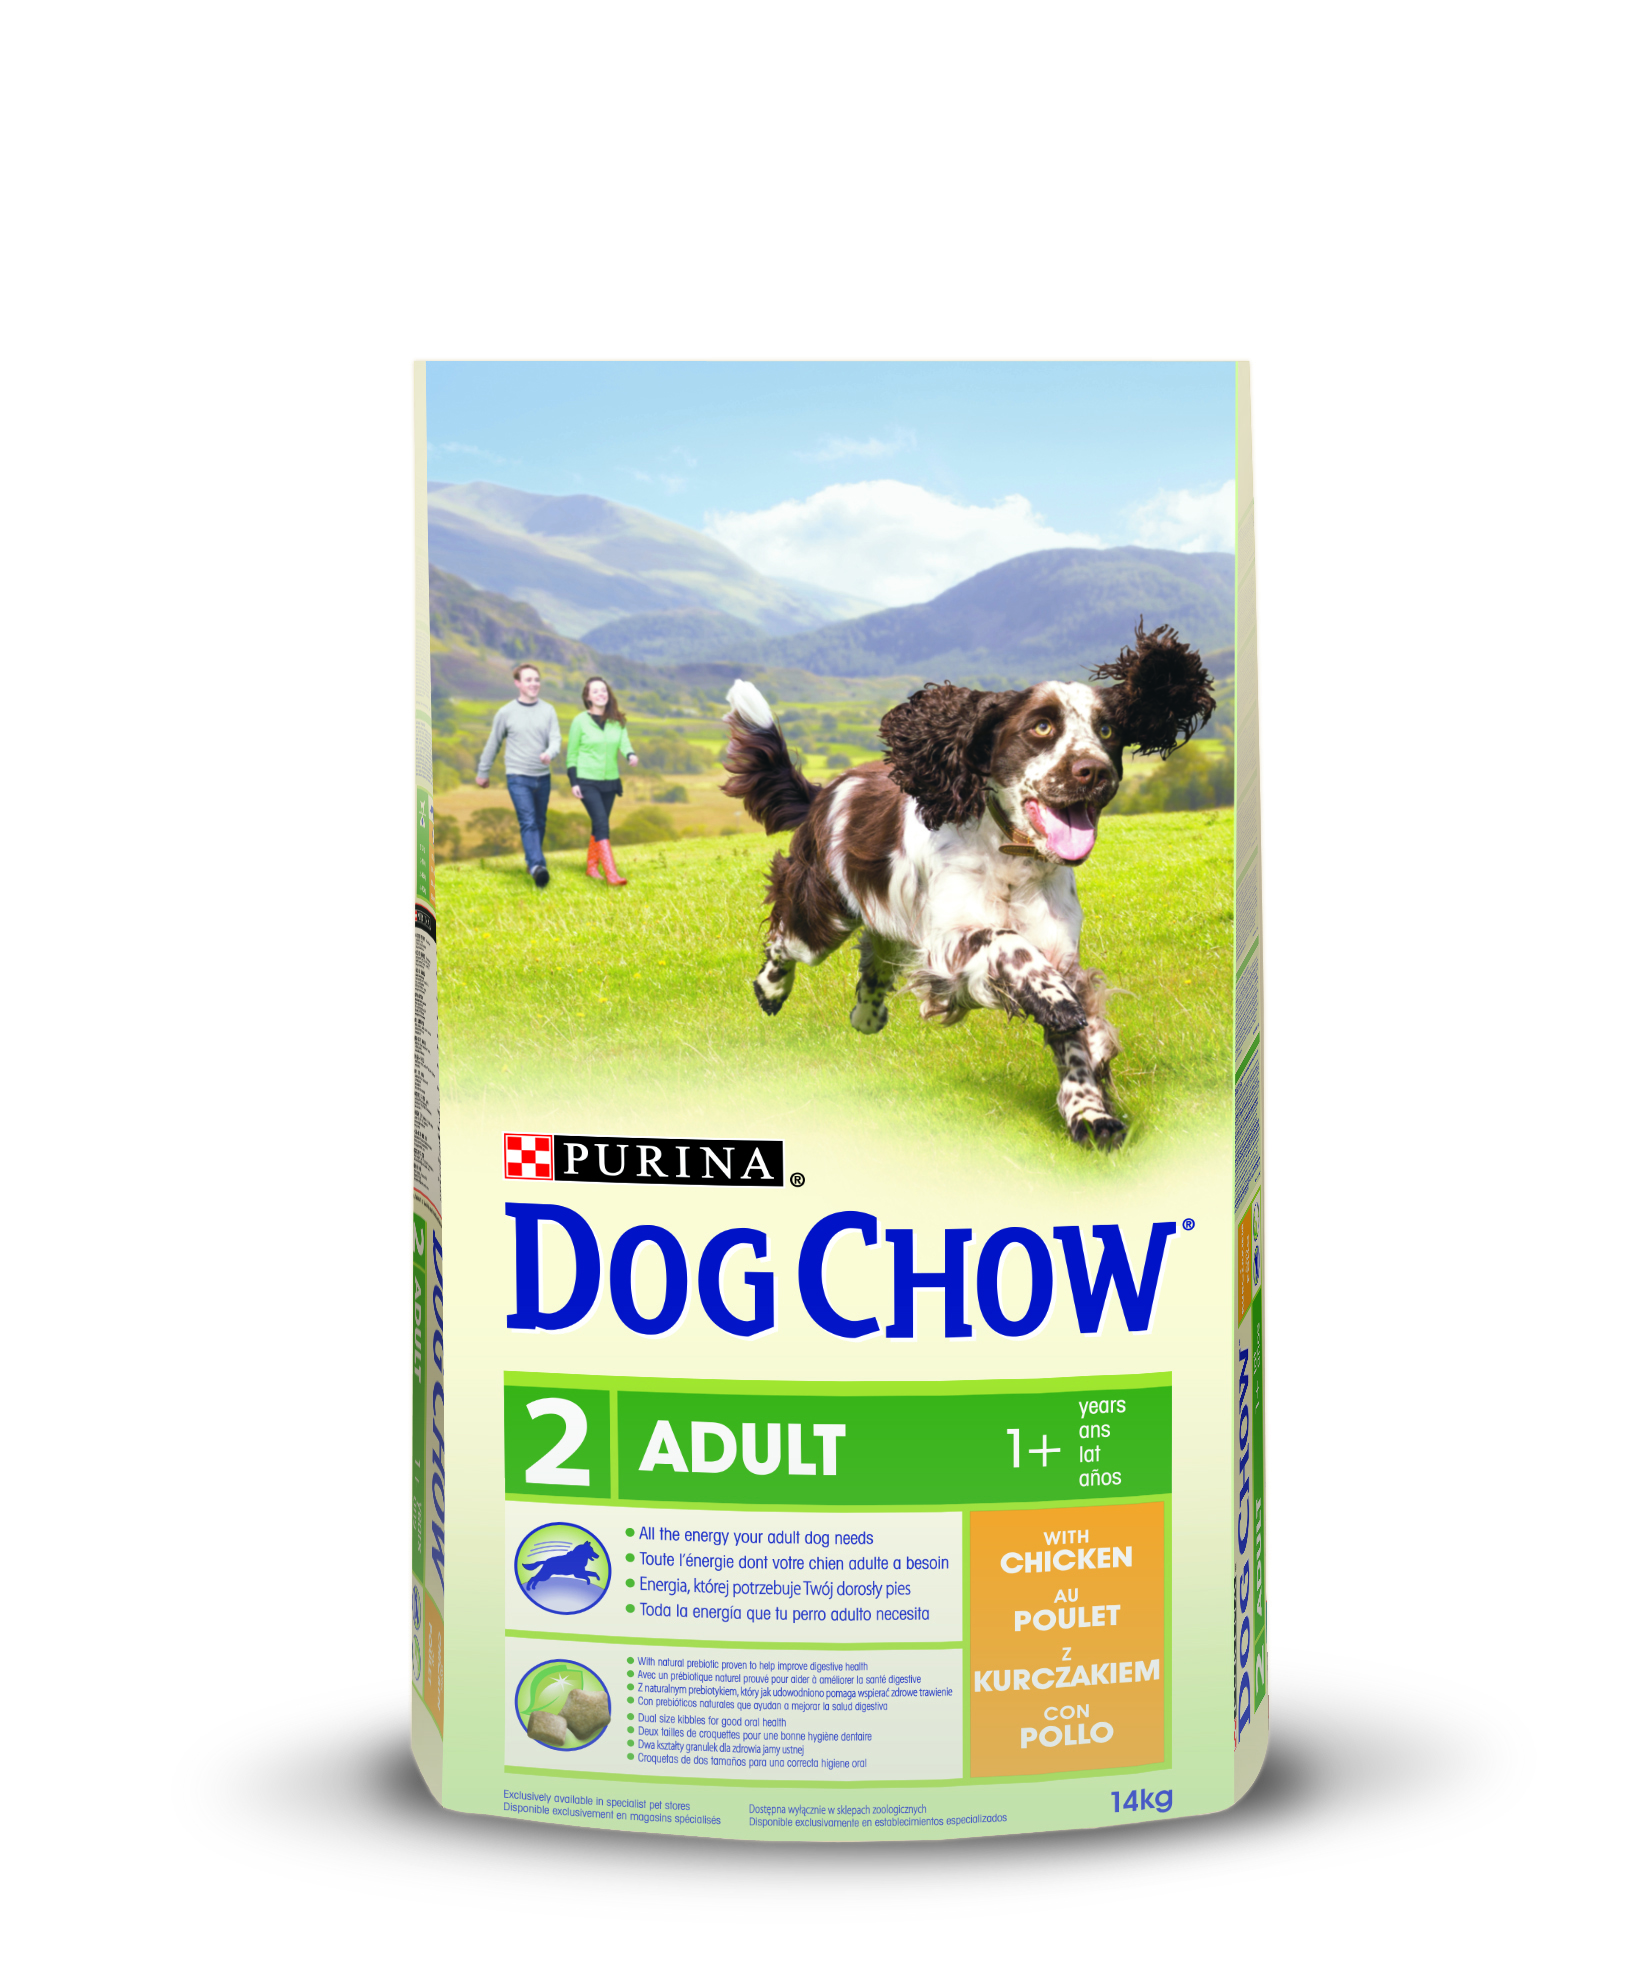 Purina Dog Chow Chien adulte 1+ Poulet